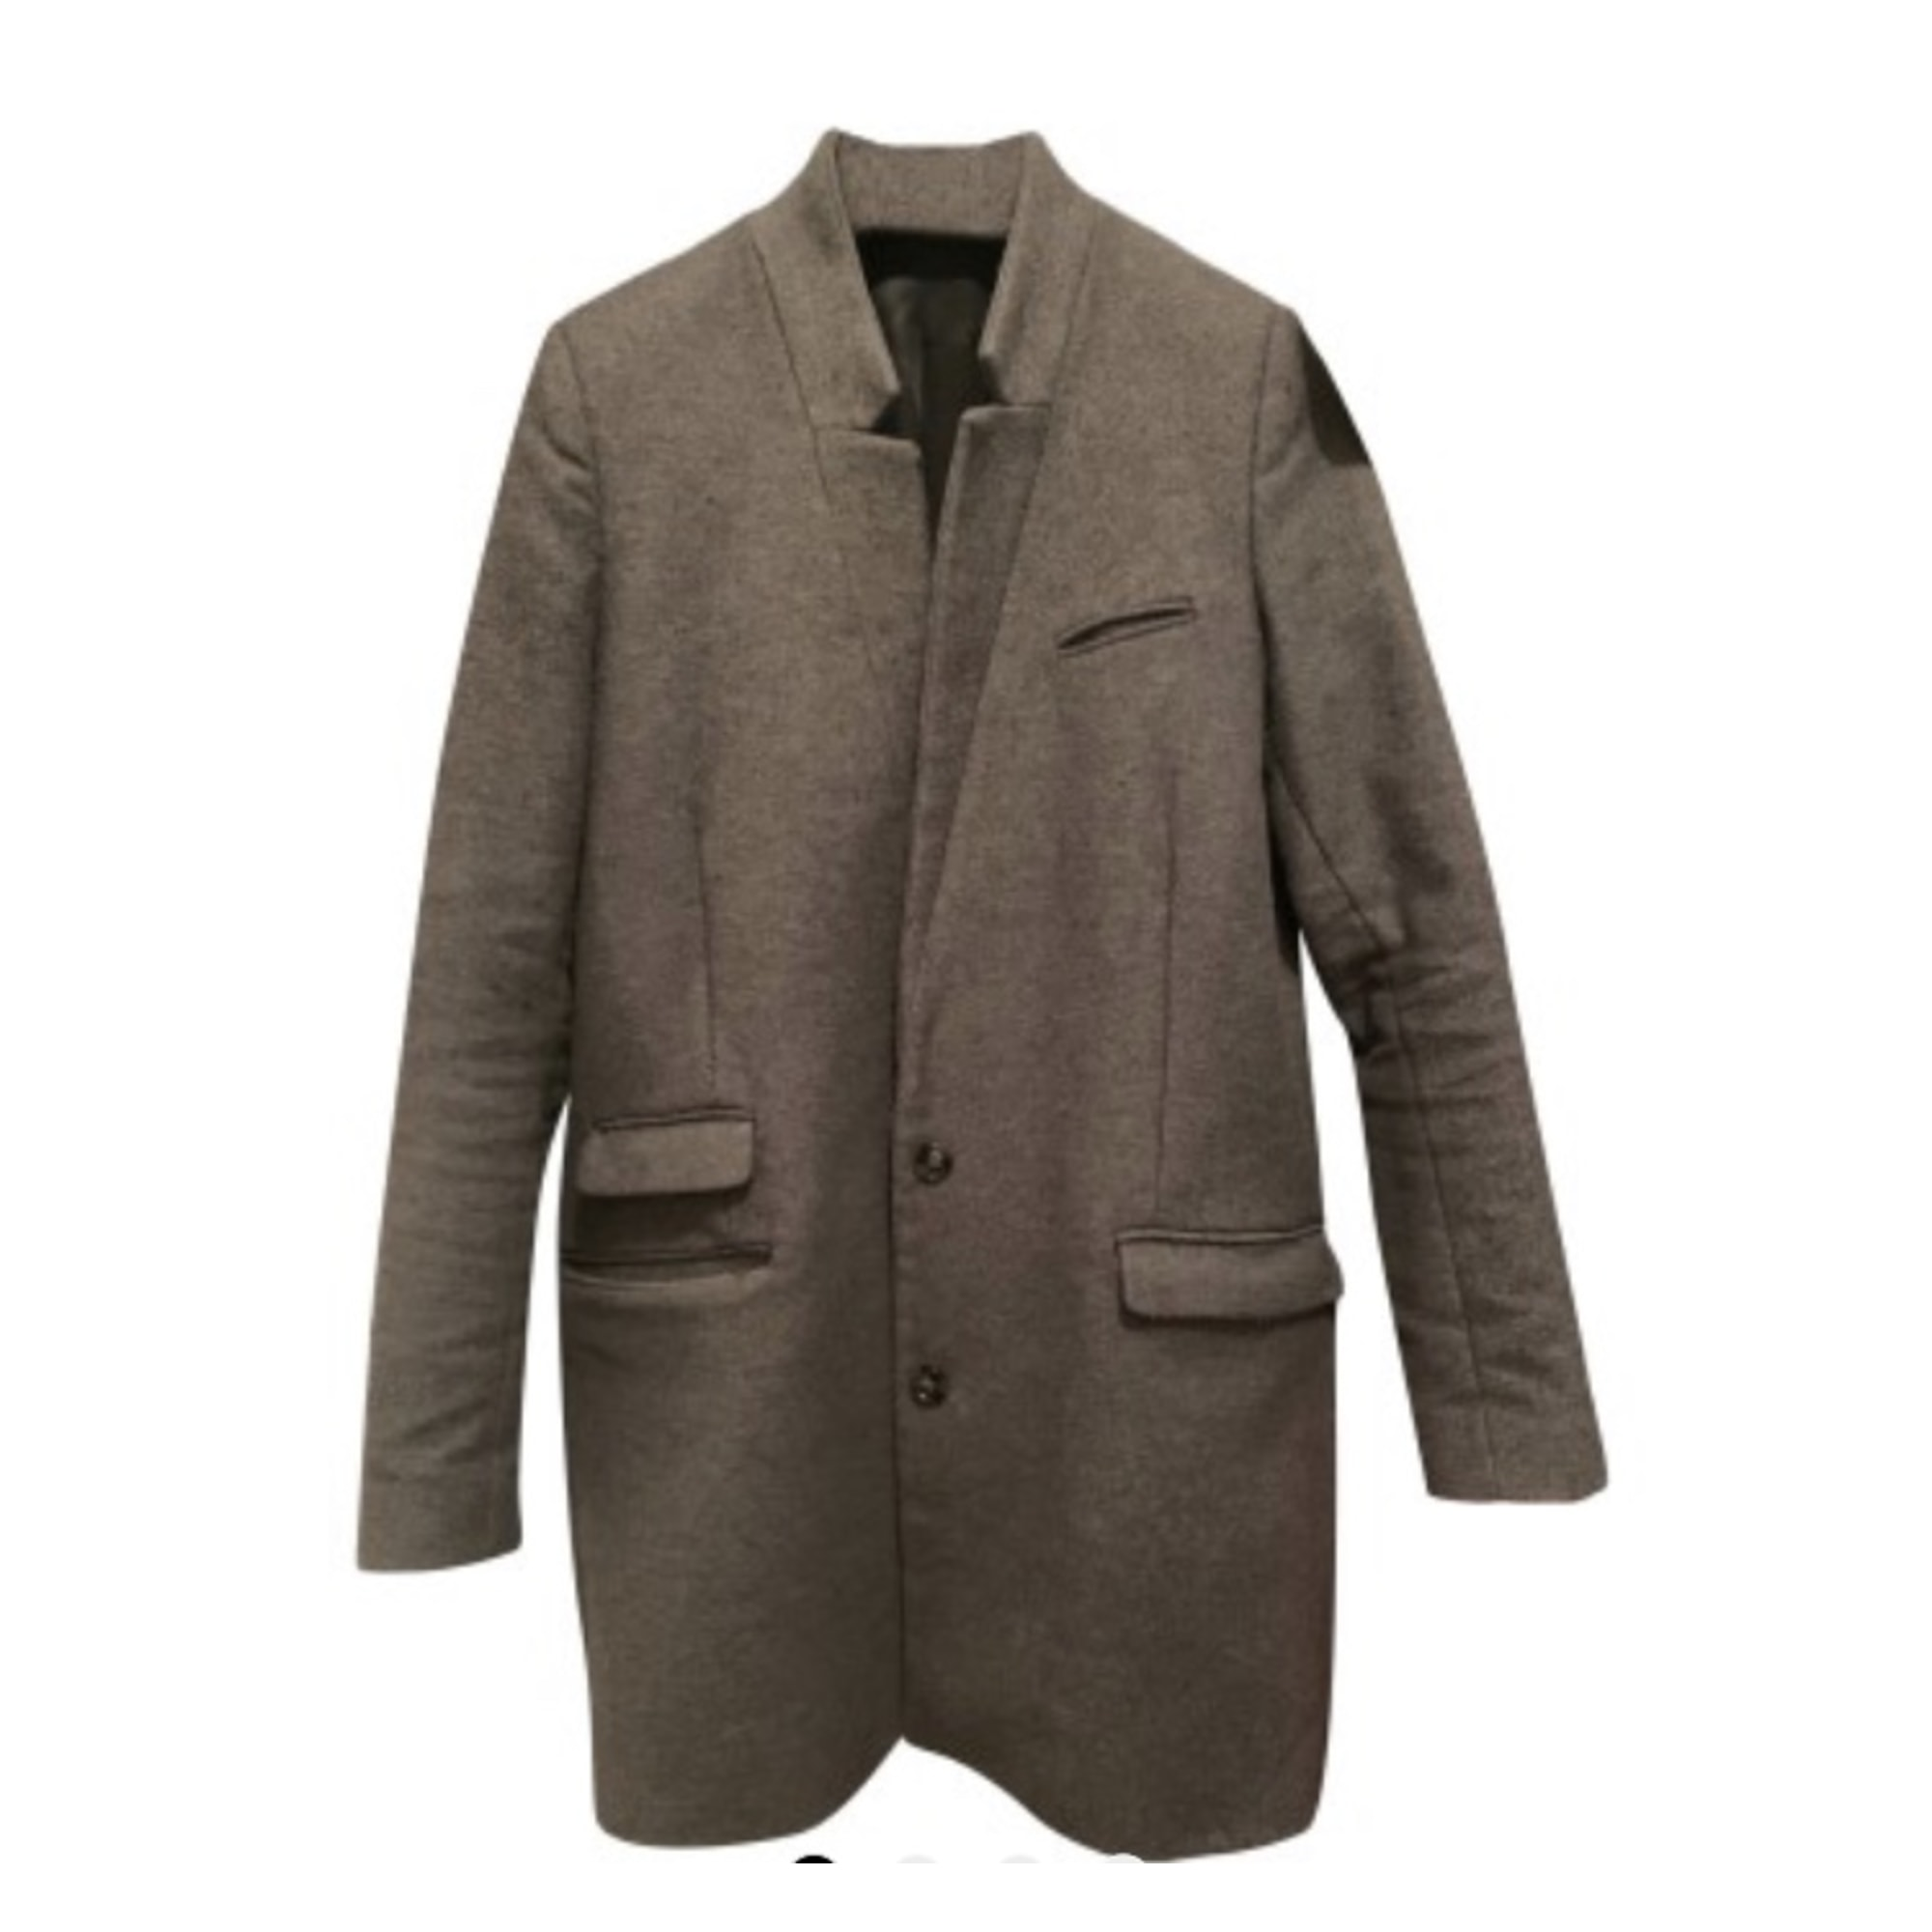 Manteau THE KOOPLES Gris, anthracite